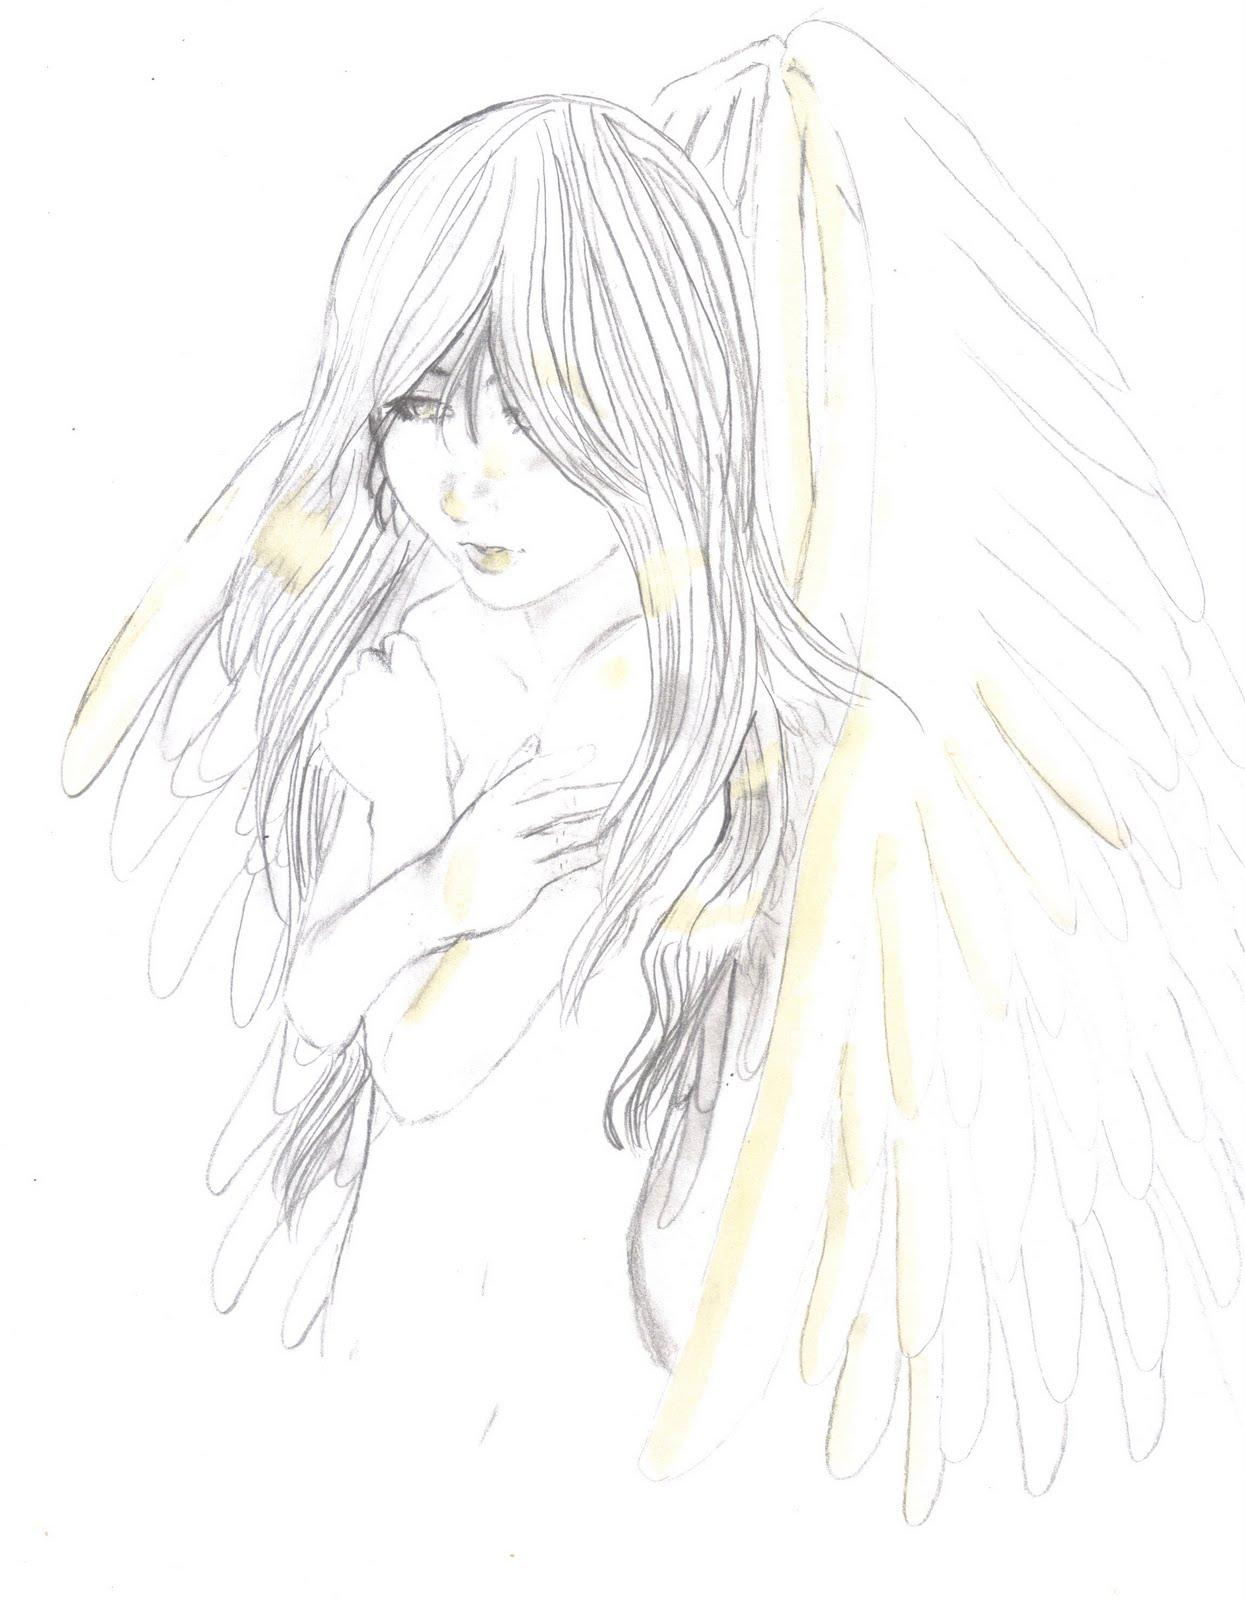 More sketches and drawings pencil drawing of an angel